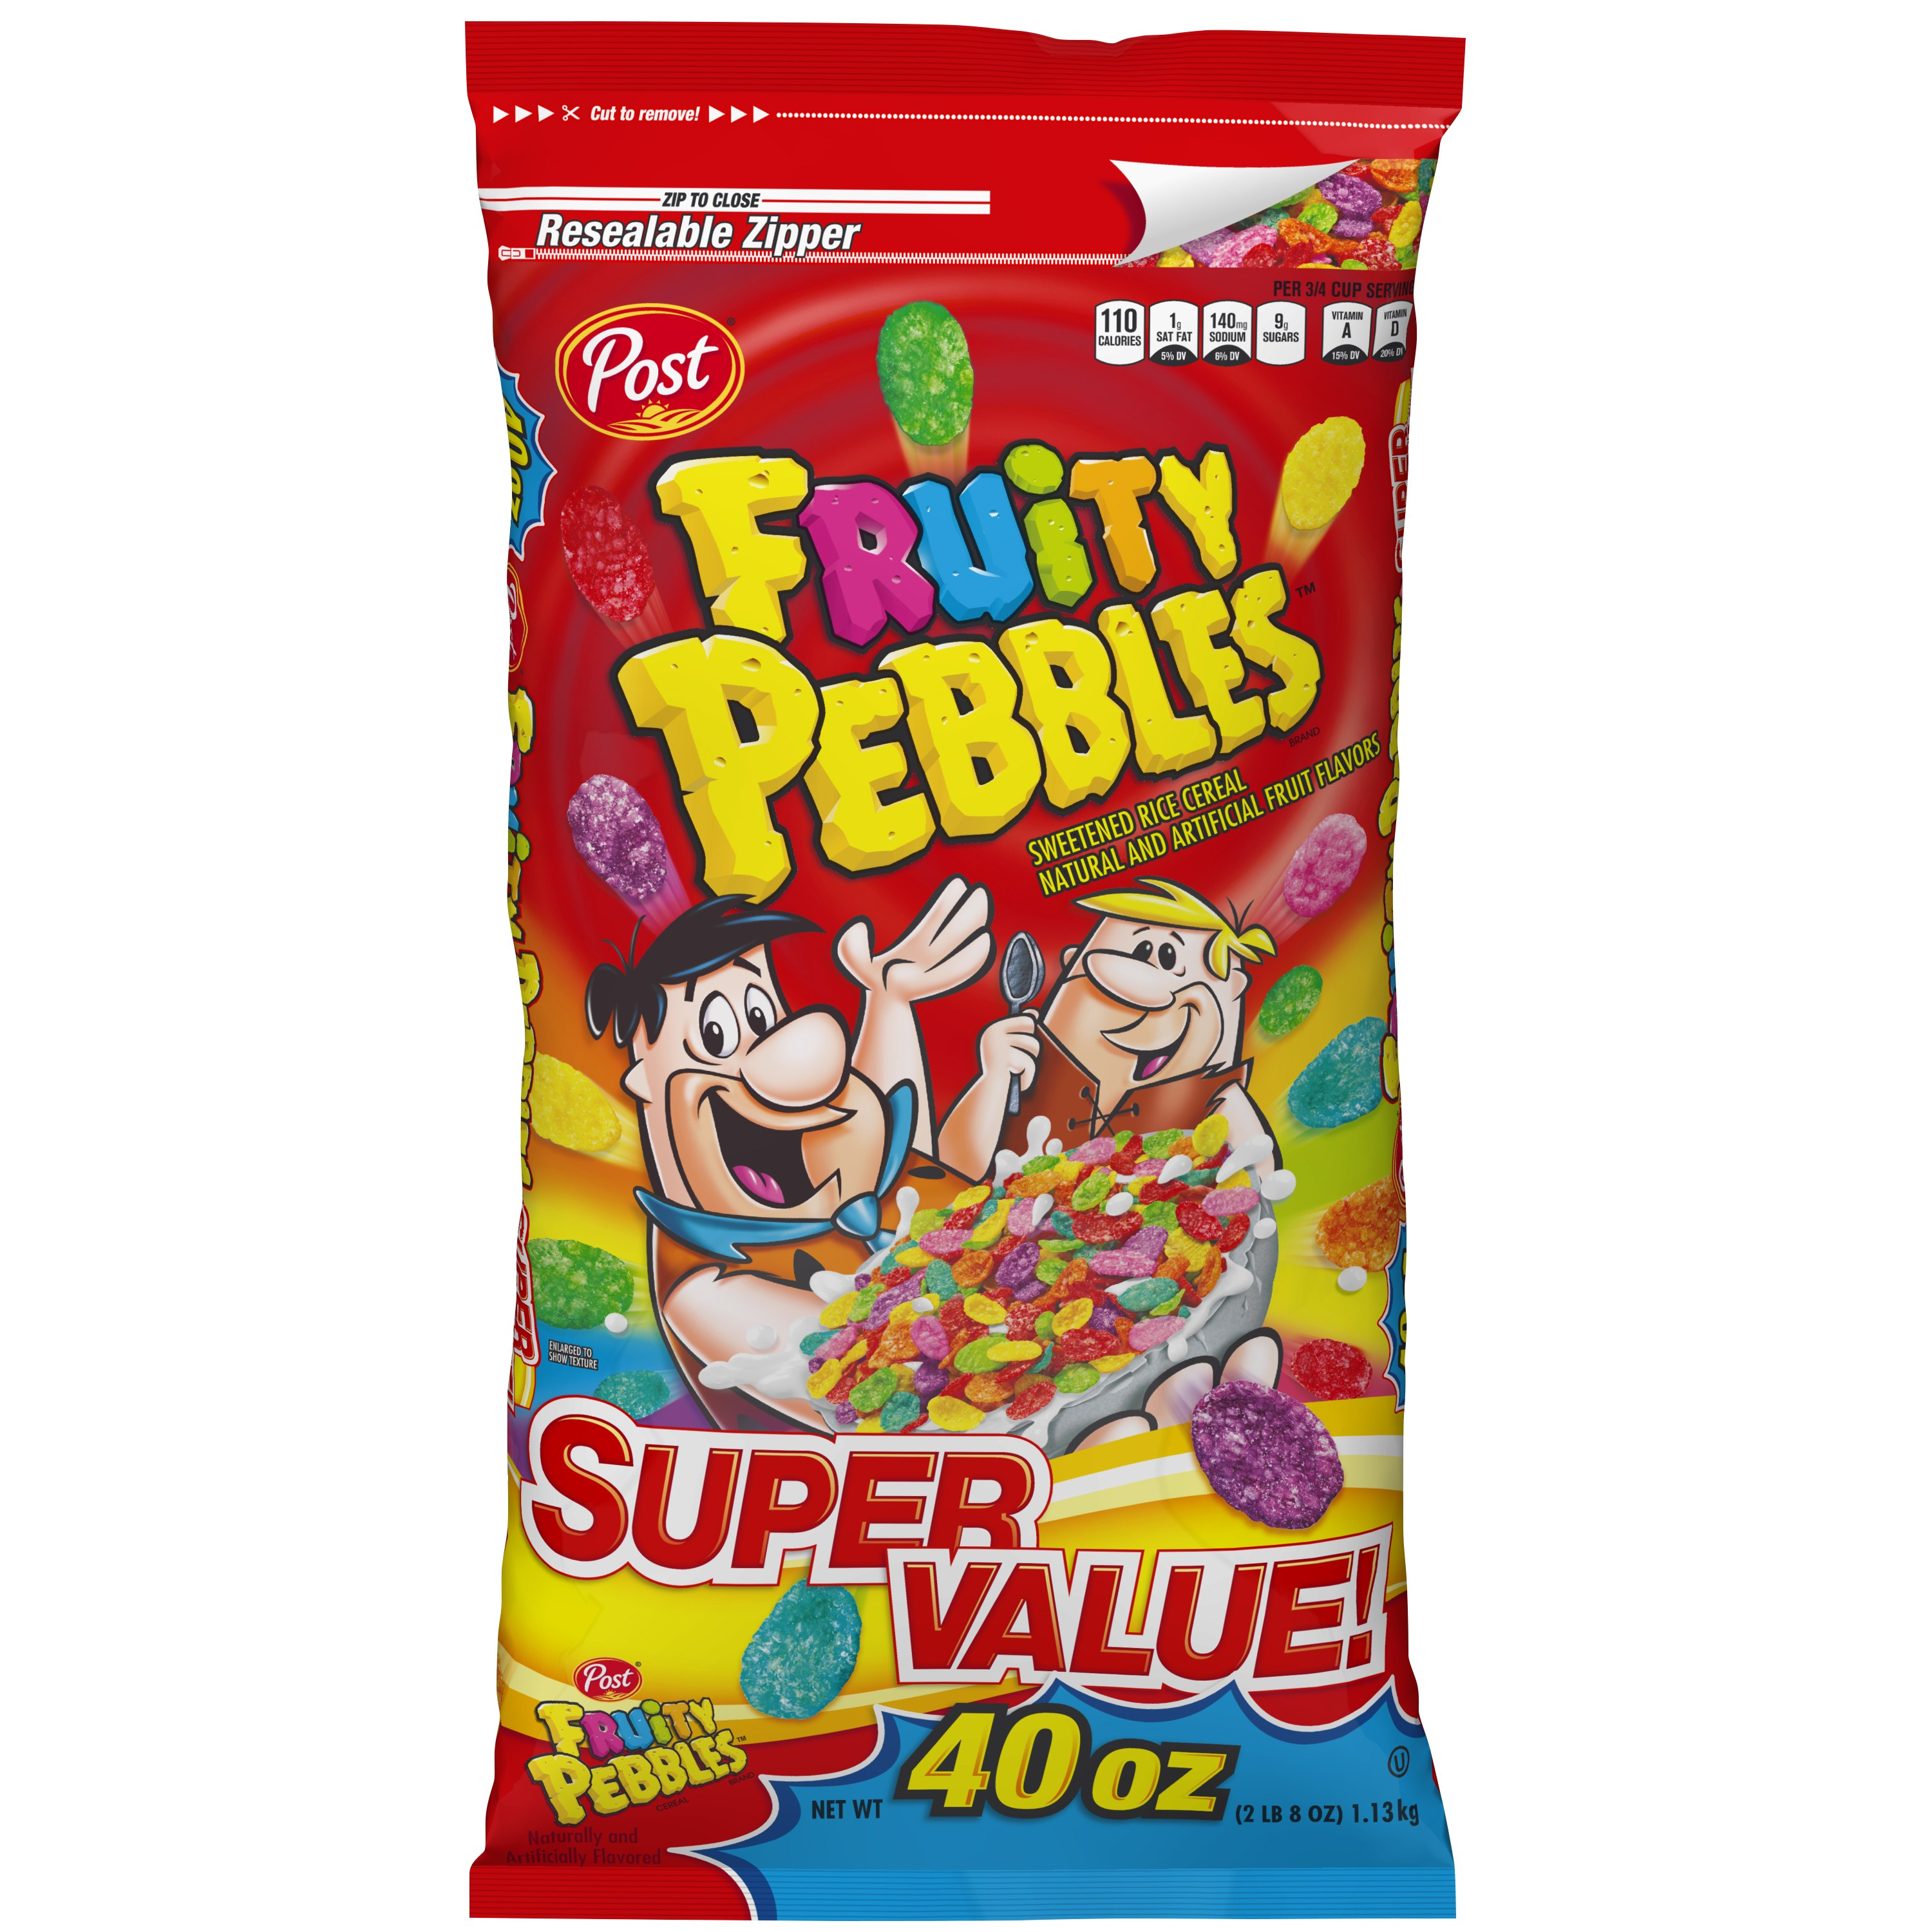 Post Fruity Pebbles Gluten Free Breakfast Cereal, 40 Oz